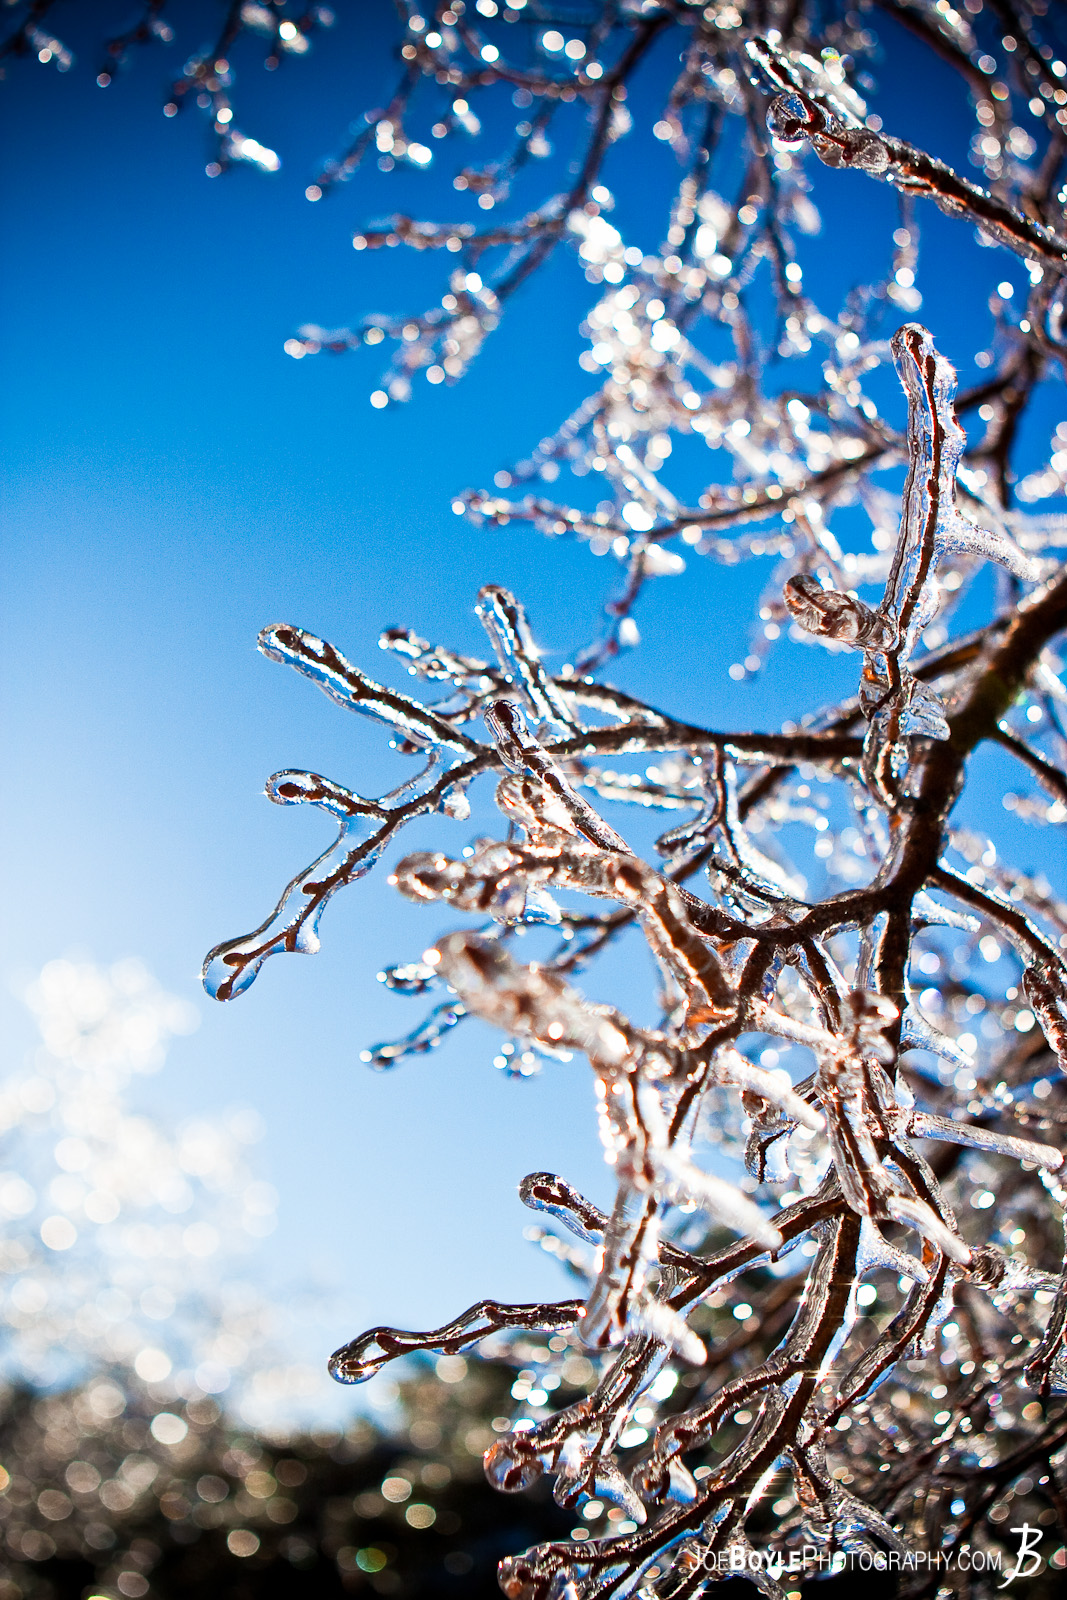 I captured this photo after an ice storm came through the Cleveland area. The storm provided some great picture opportunities that I was able to capture the following day including these tree branches coated in ice on the backdrop of a beautiful blue sky!